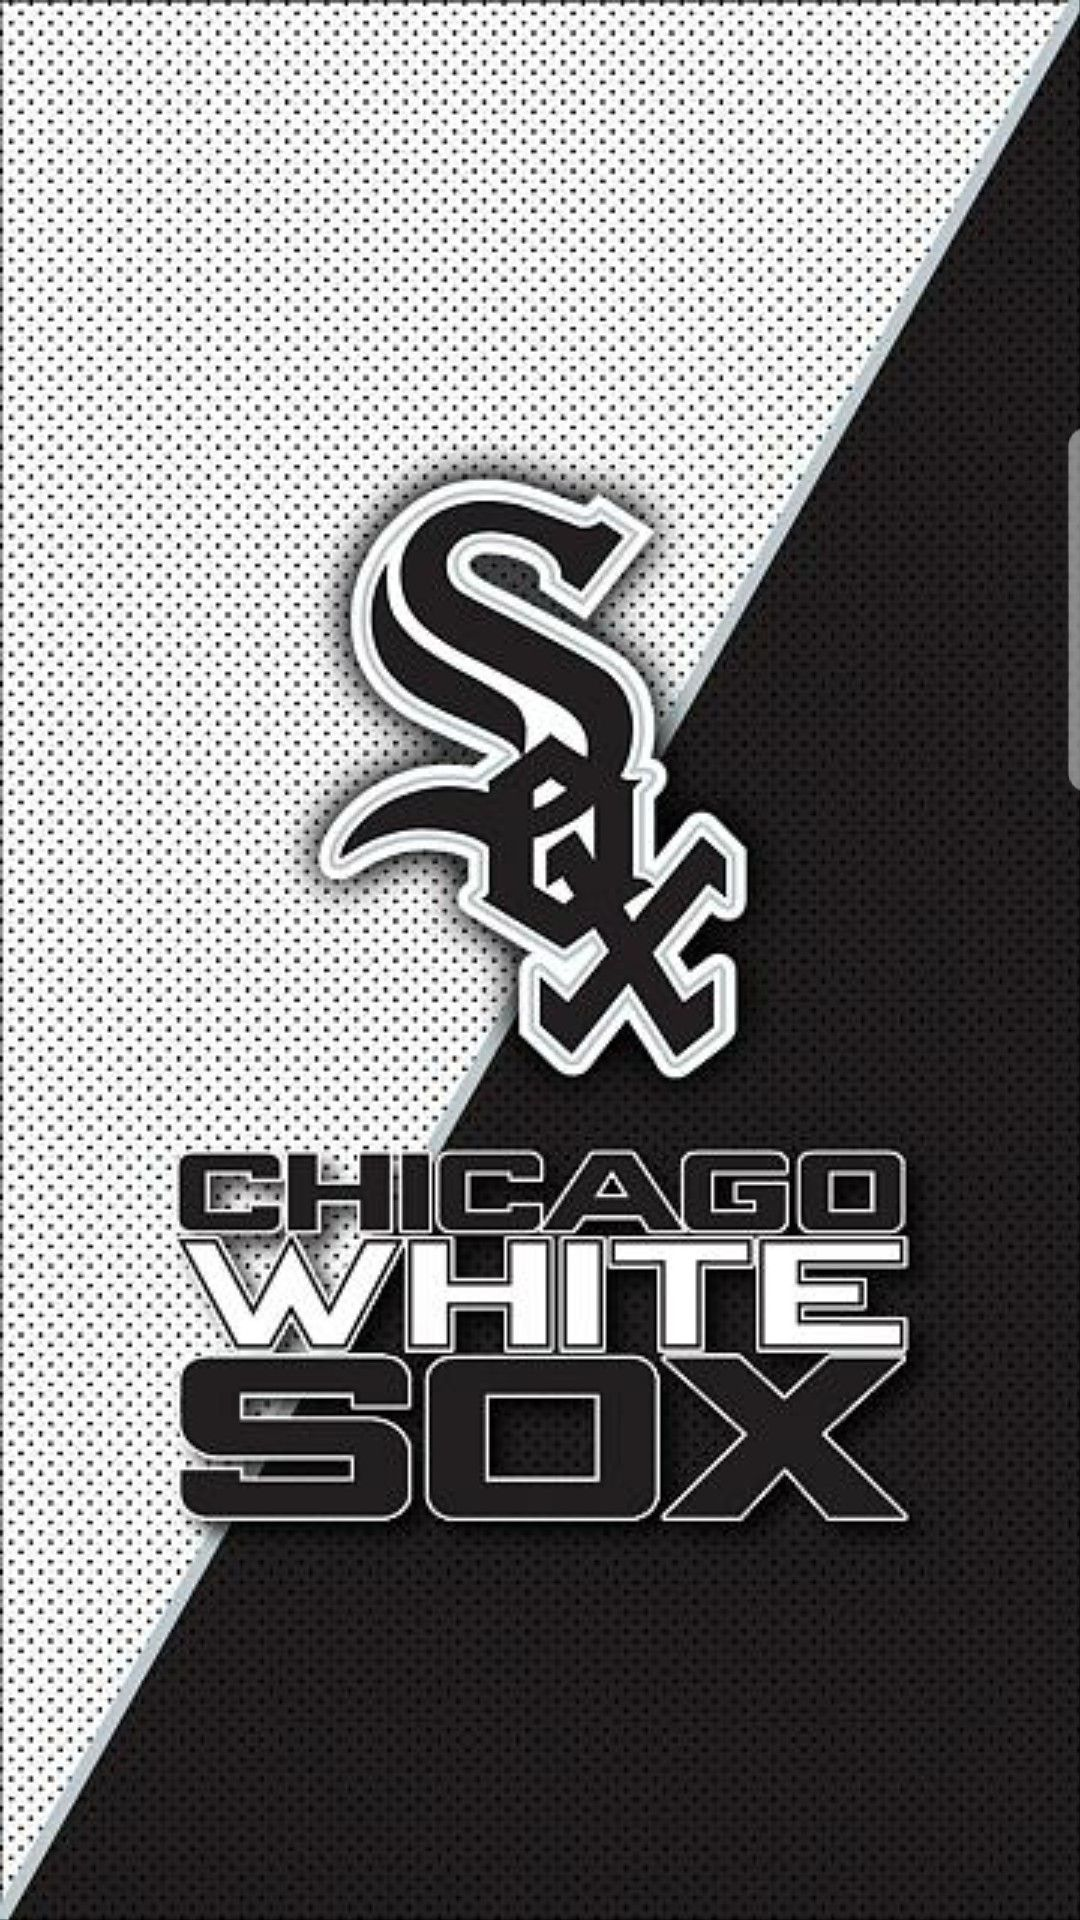 Chicago White Sox Iphone X Wallpaper